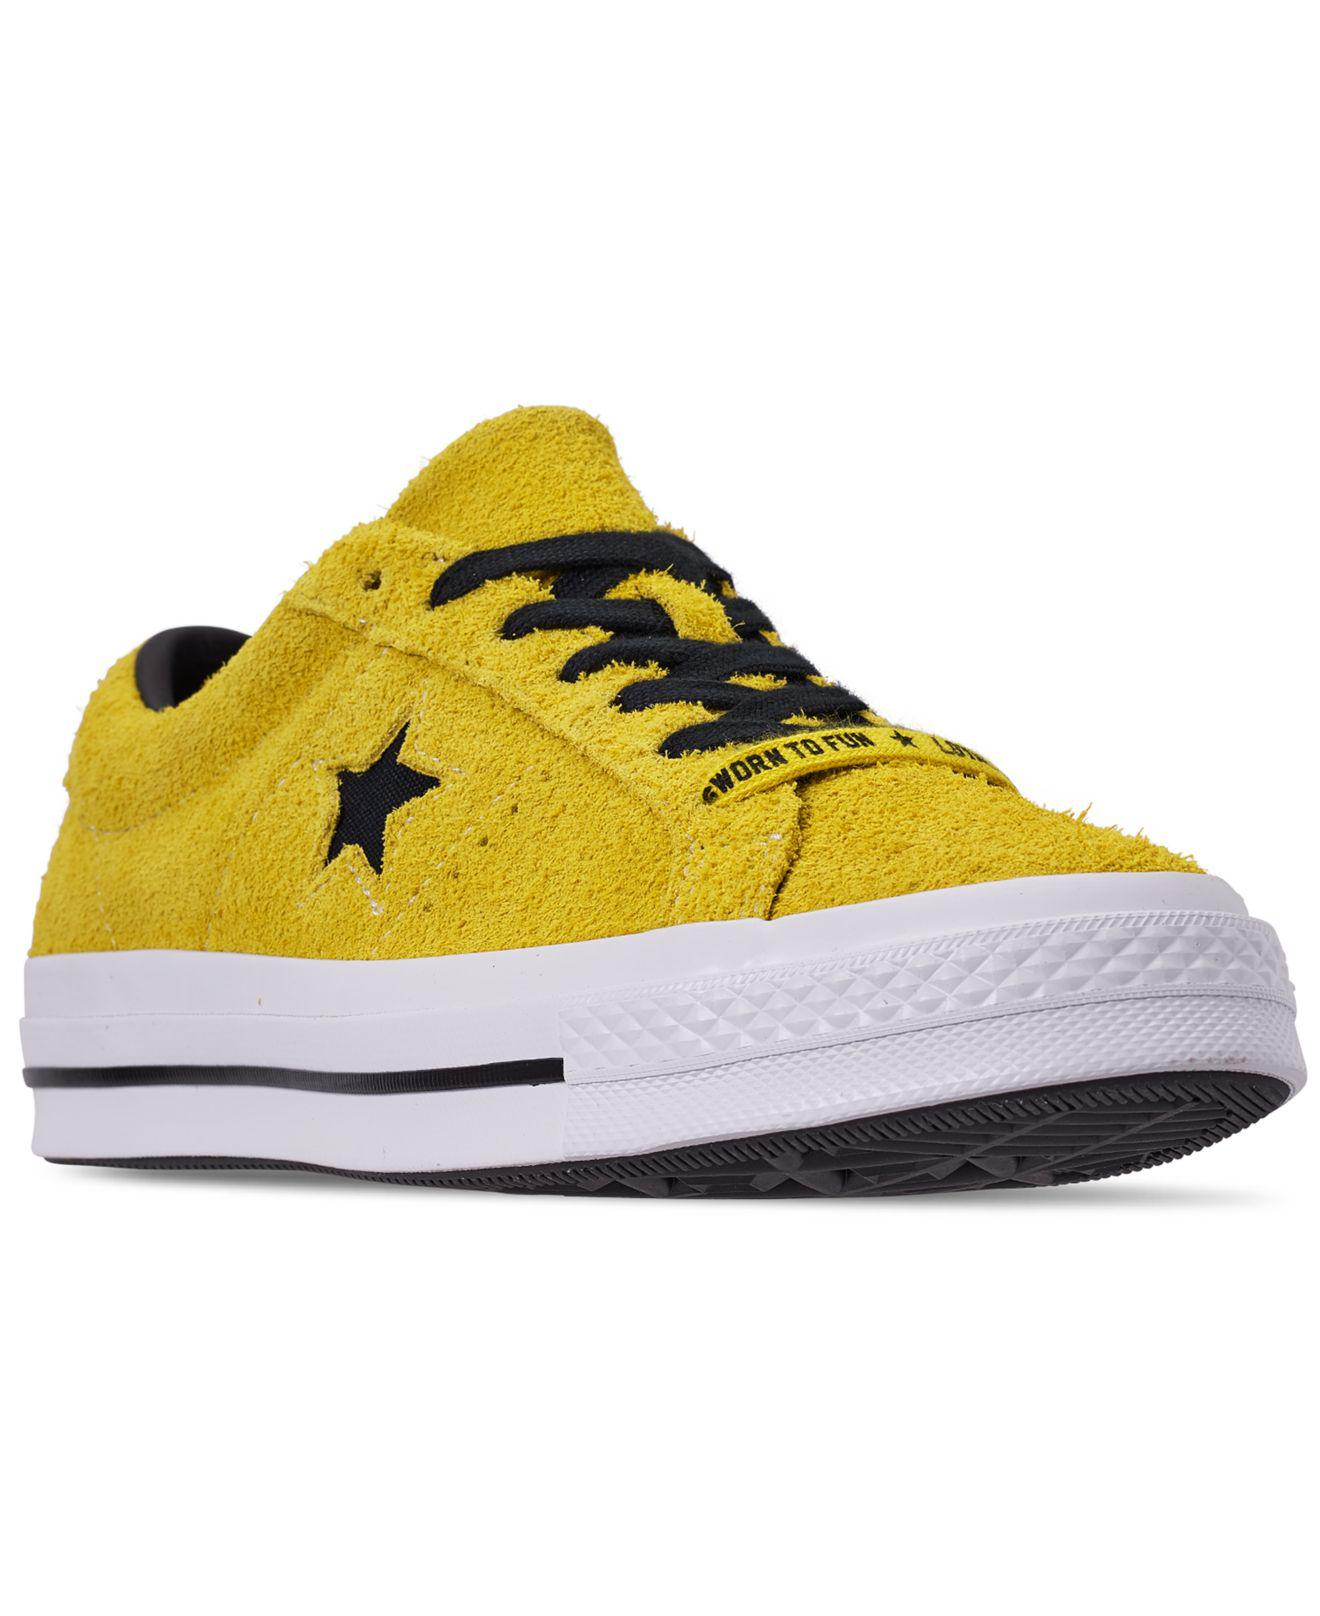 c015d63b222e54 Lyst - Converse One Star Dark Star Vintage Suede Ox Shoes (trainers ...